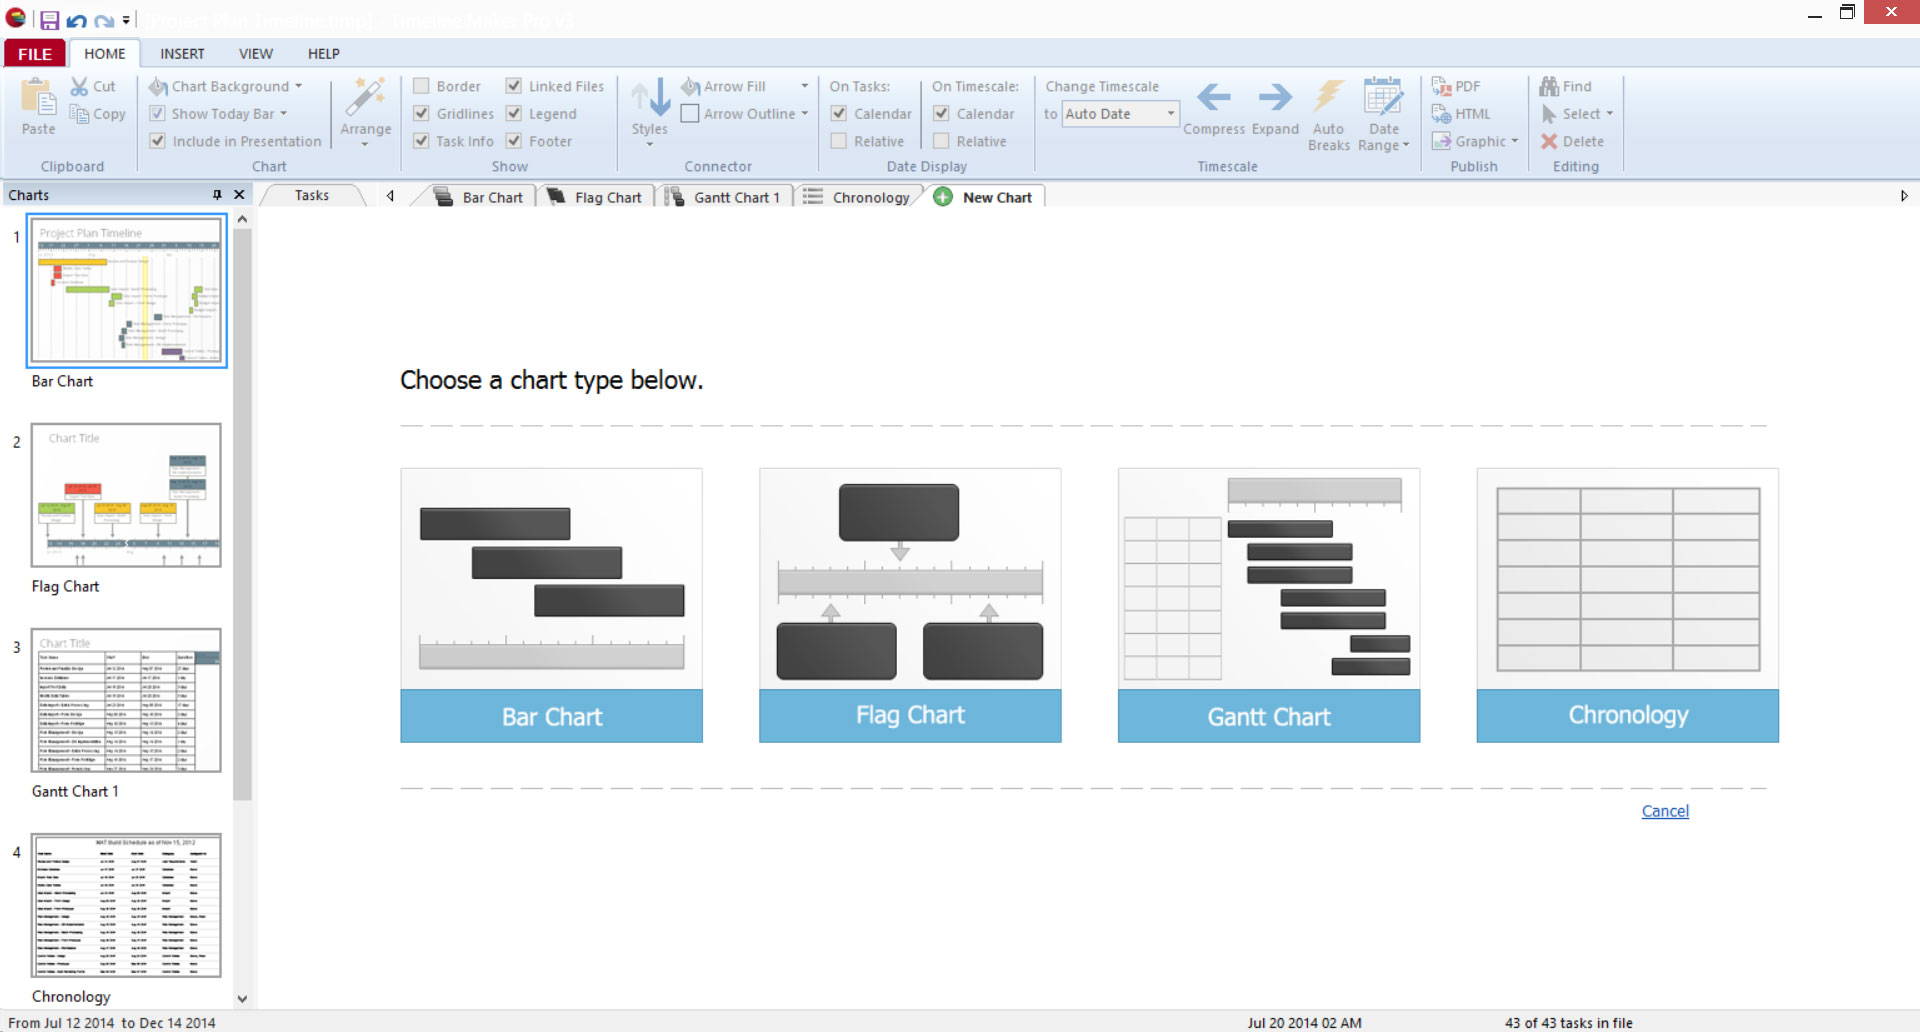 An overview of the key features of Timeline Maker Pro.